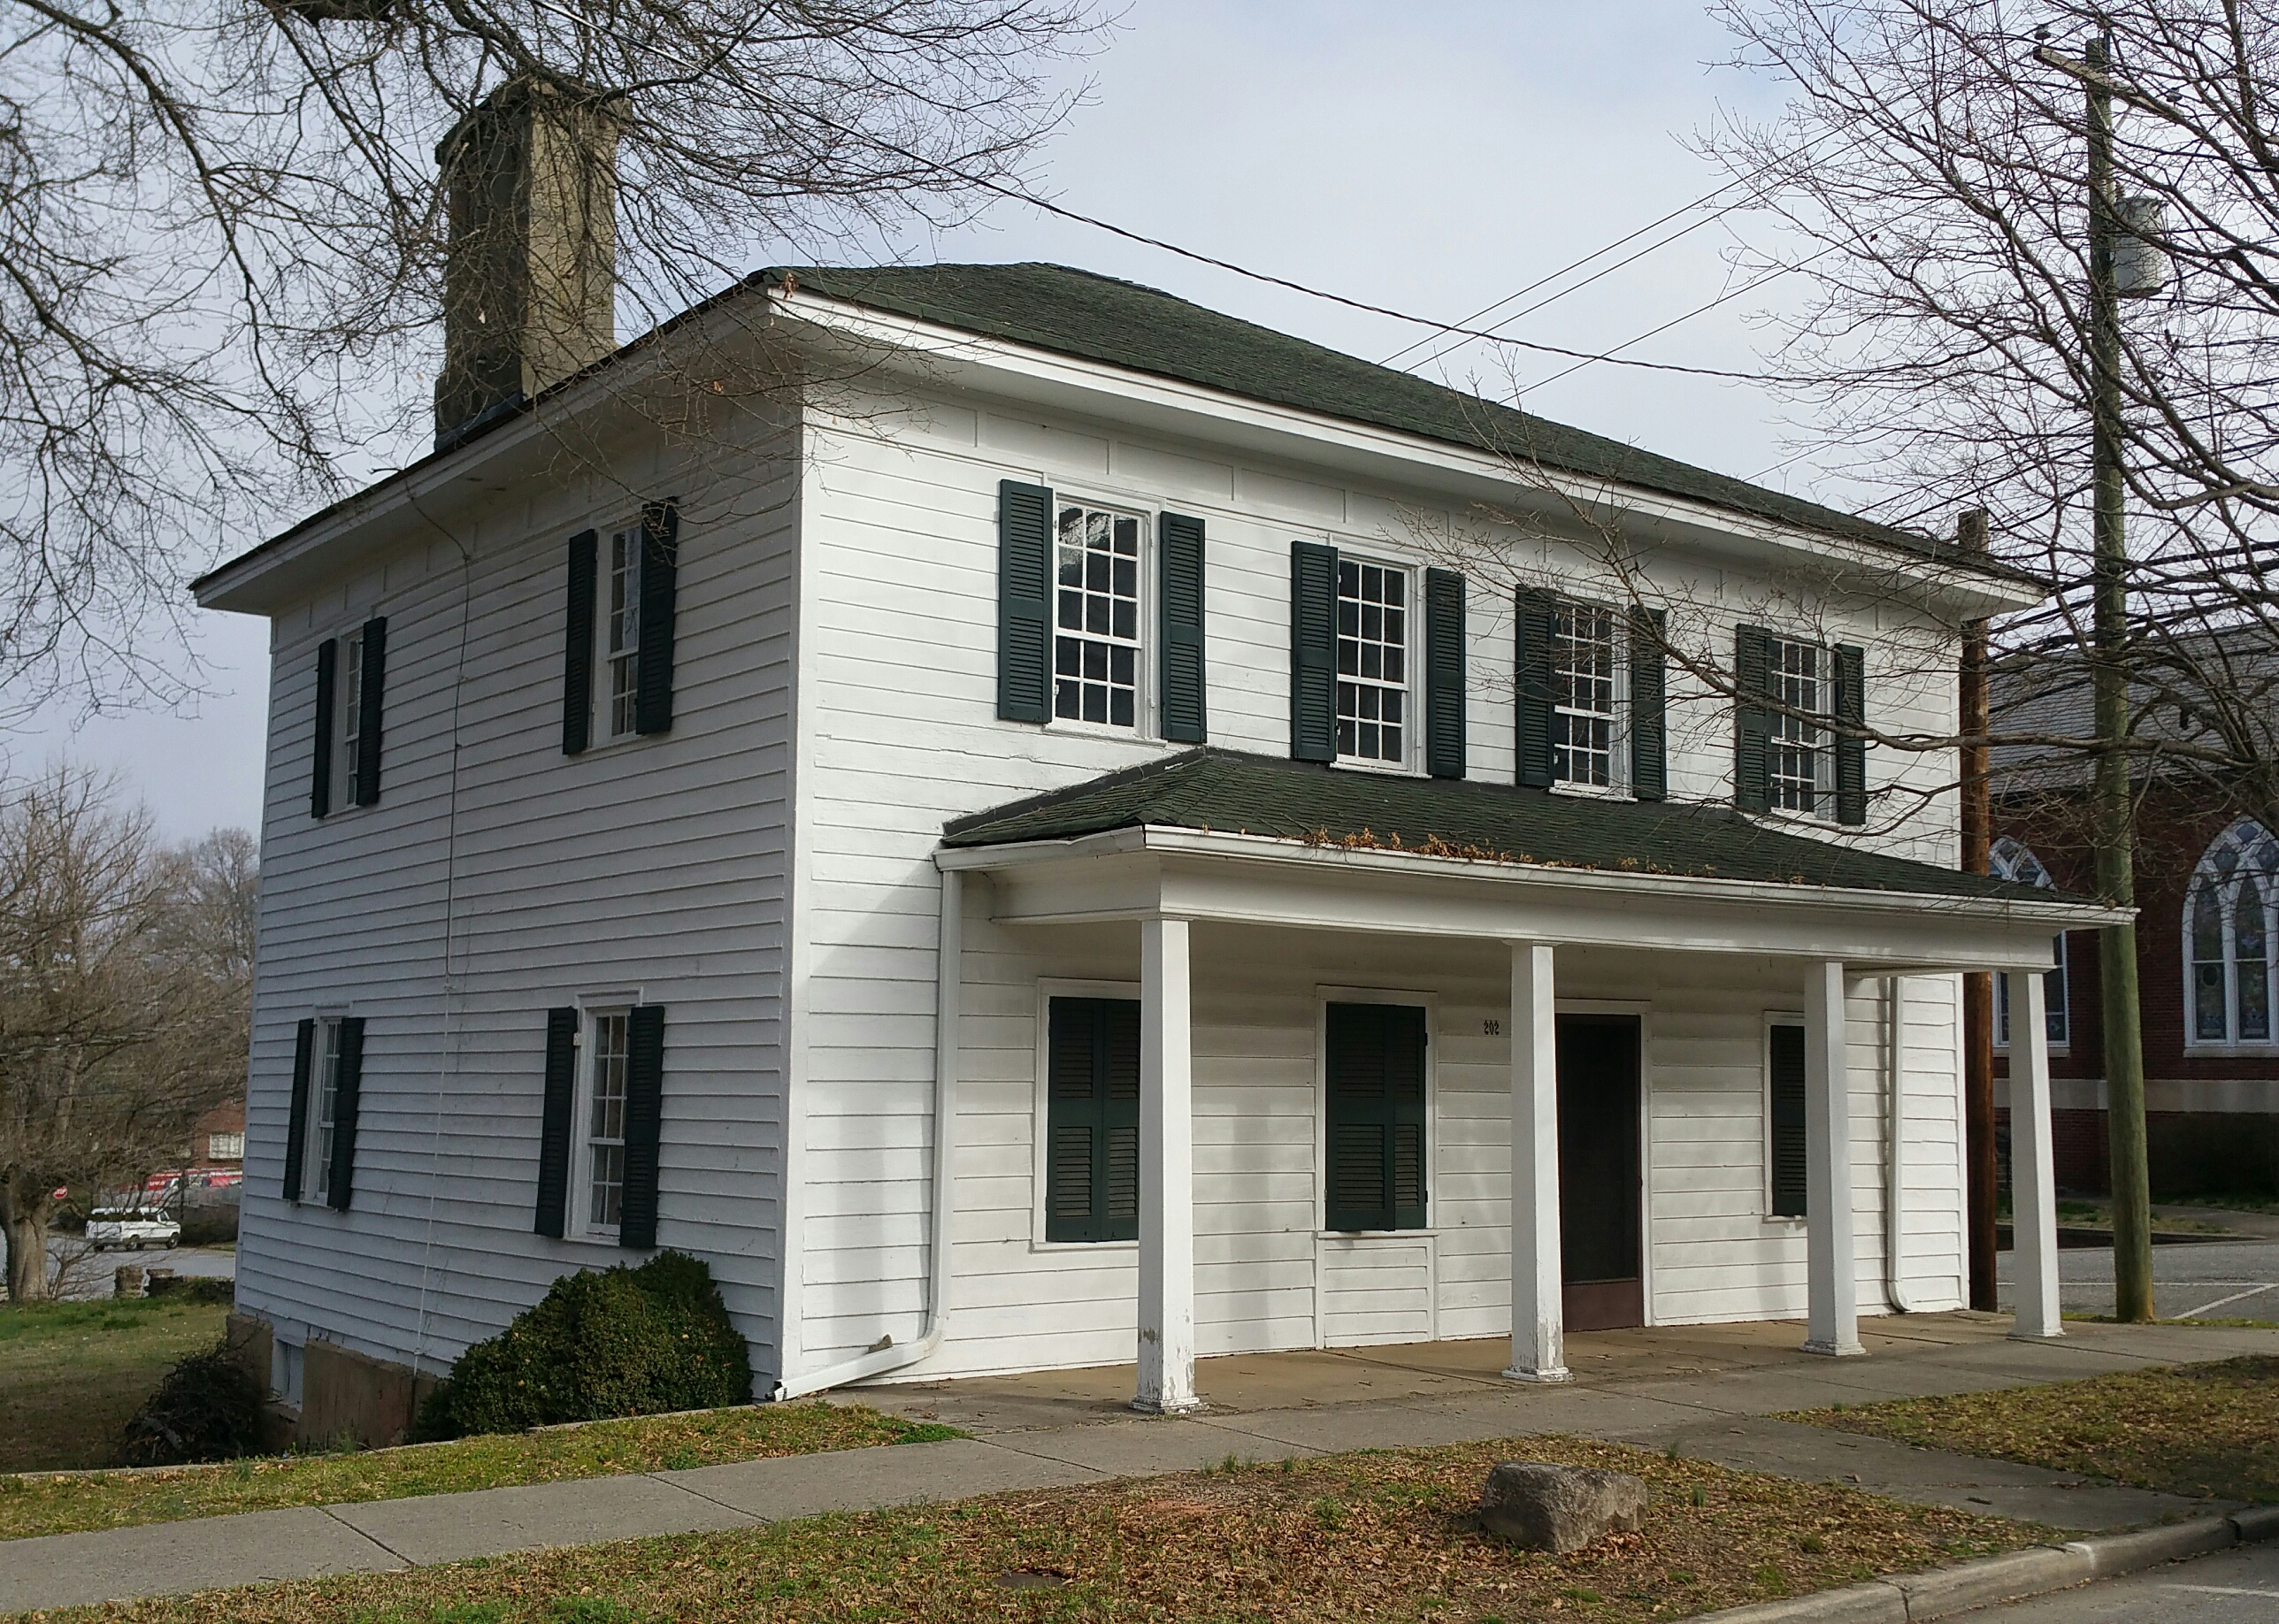 Documentation suggests that the Federal Style Michal-Butt-Brown-Pressly House could have been built as early as 1810.